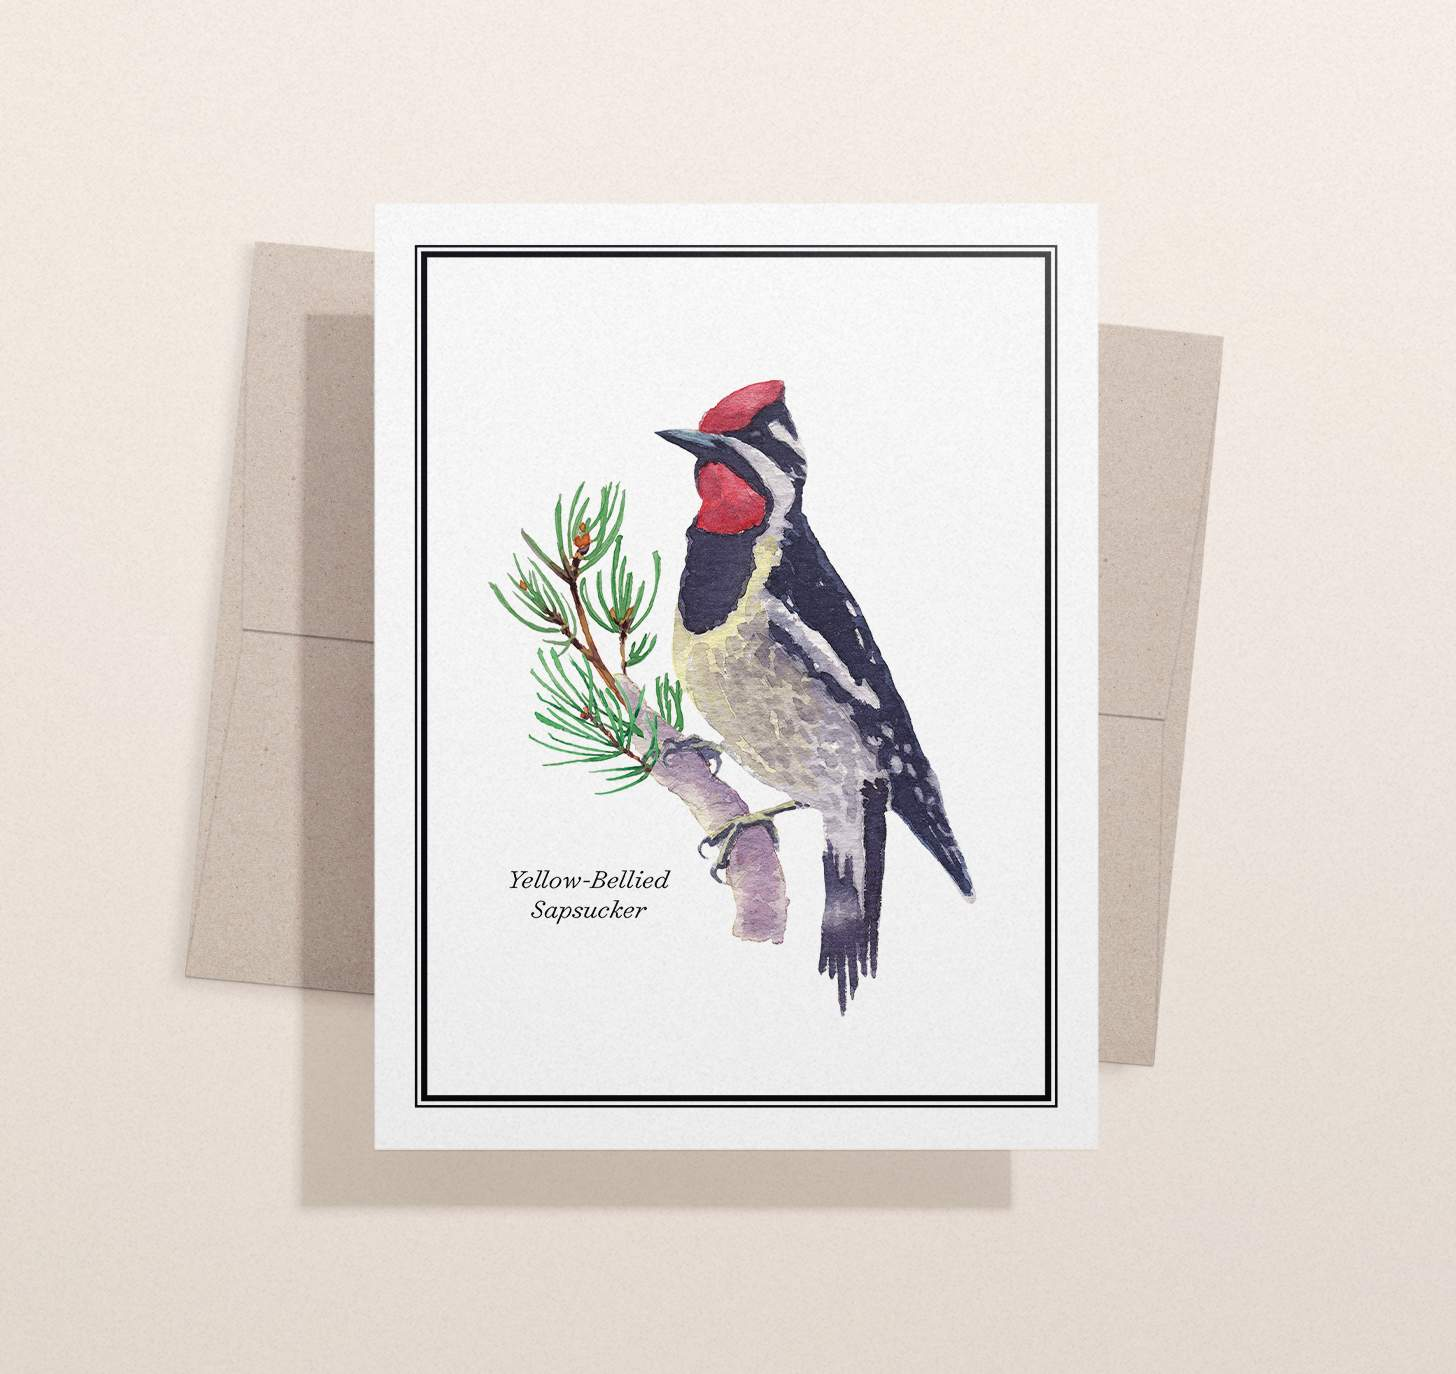 Red, black and gray bird sitting on pine branch design with envelope and light brown background